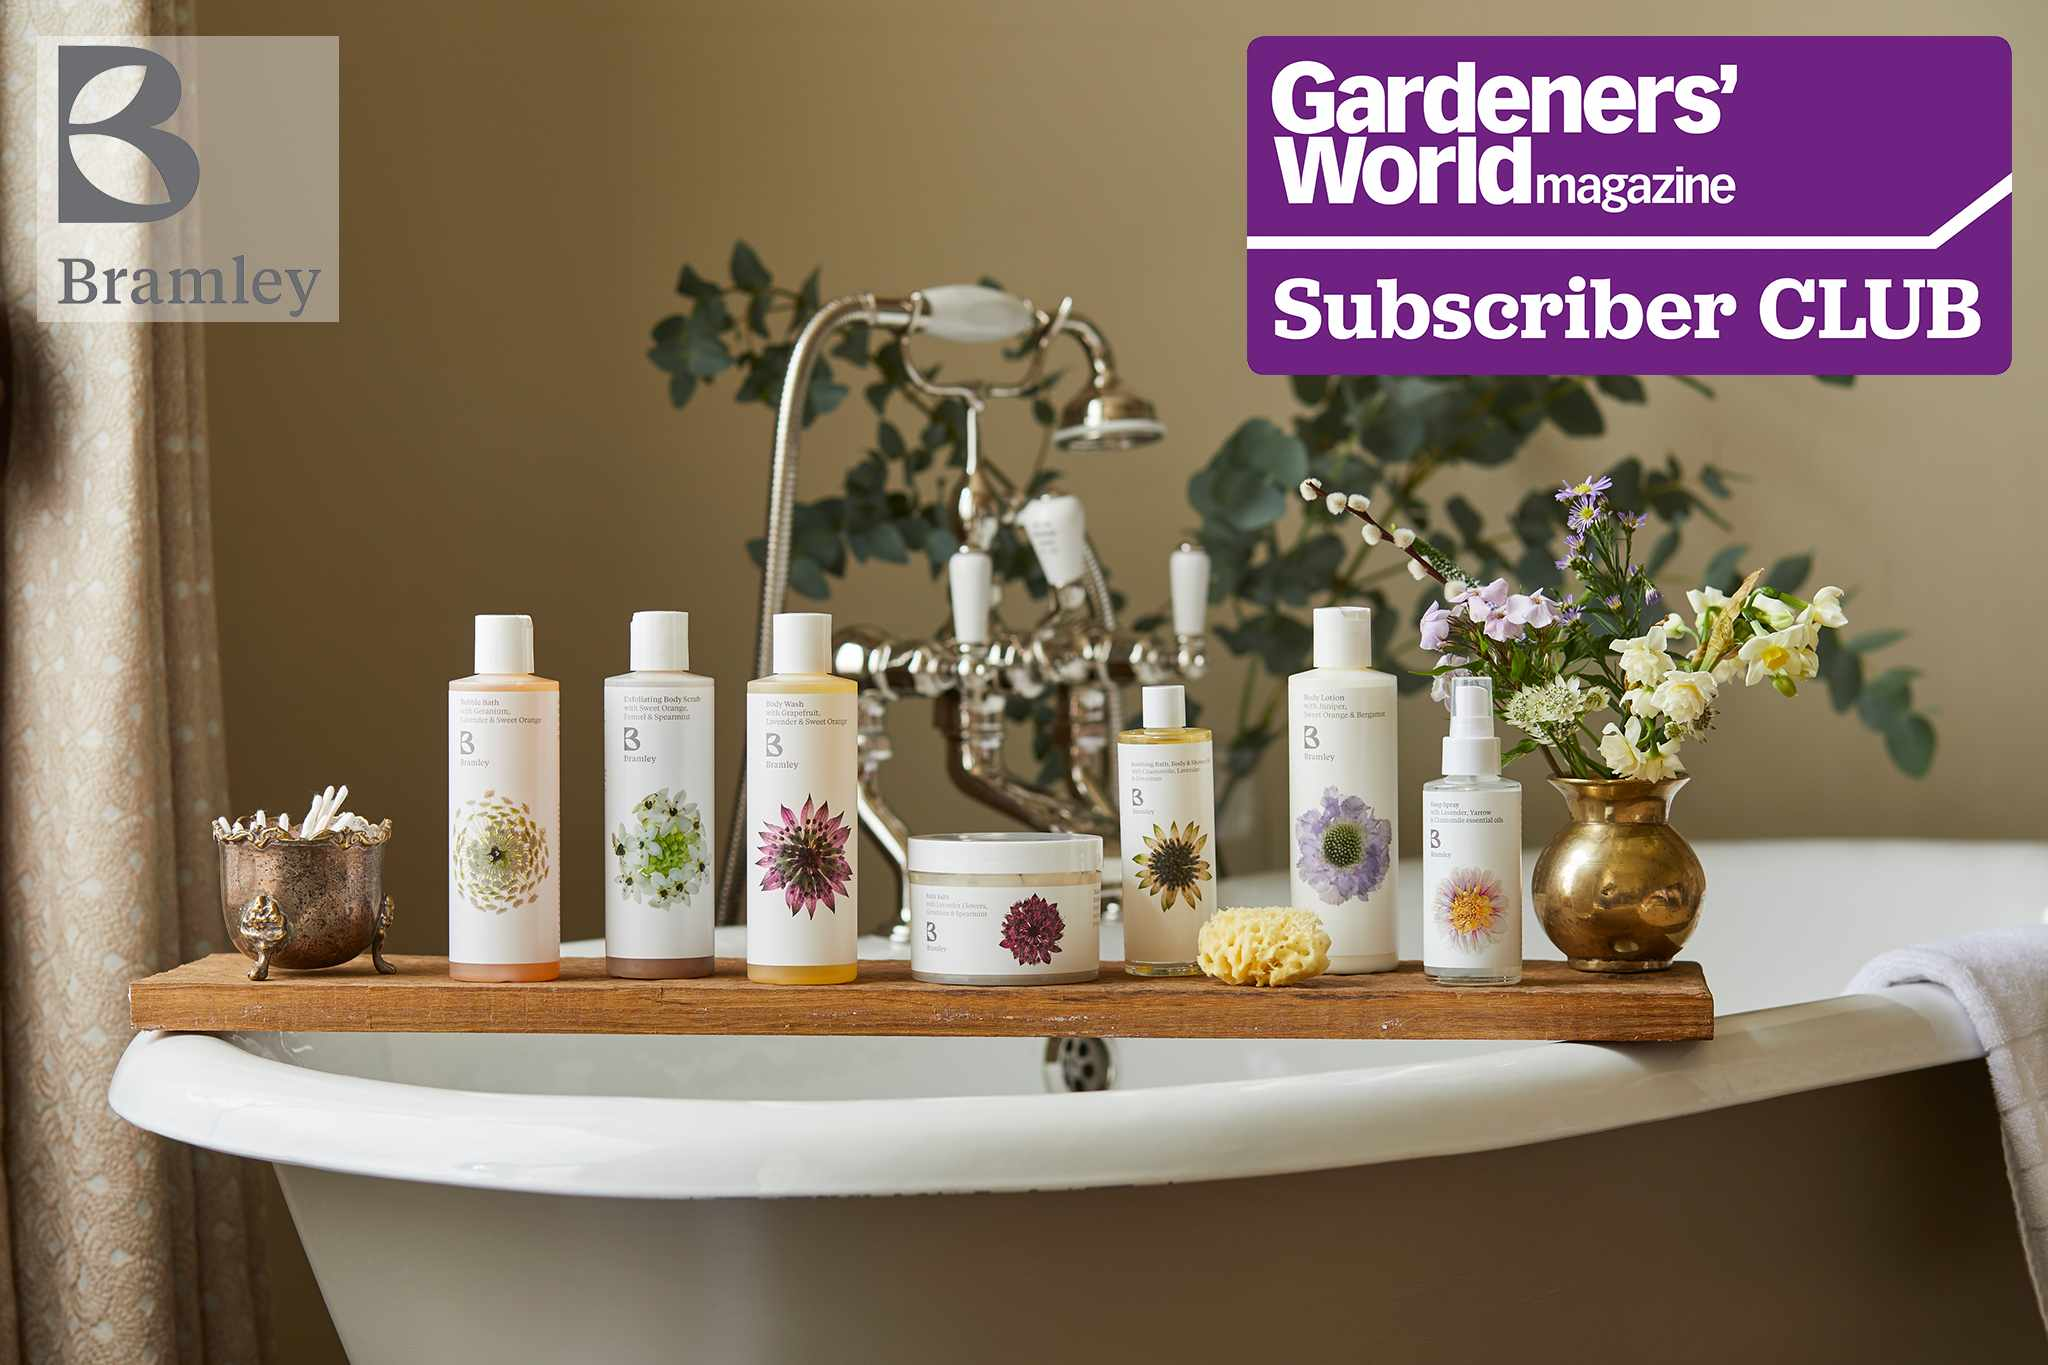 Win over £210 worth of Bramley products in exclusive Subscriber Club competition